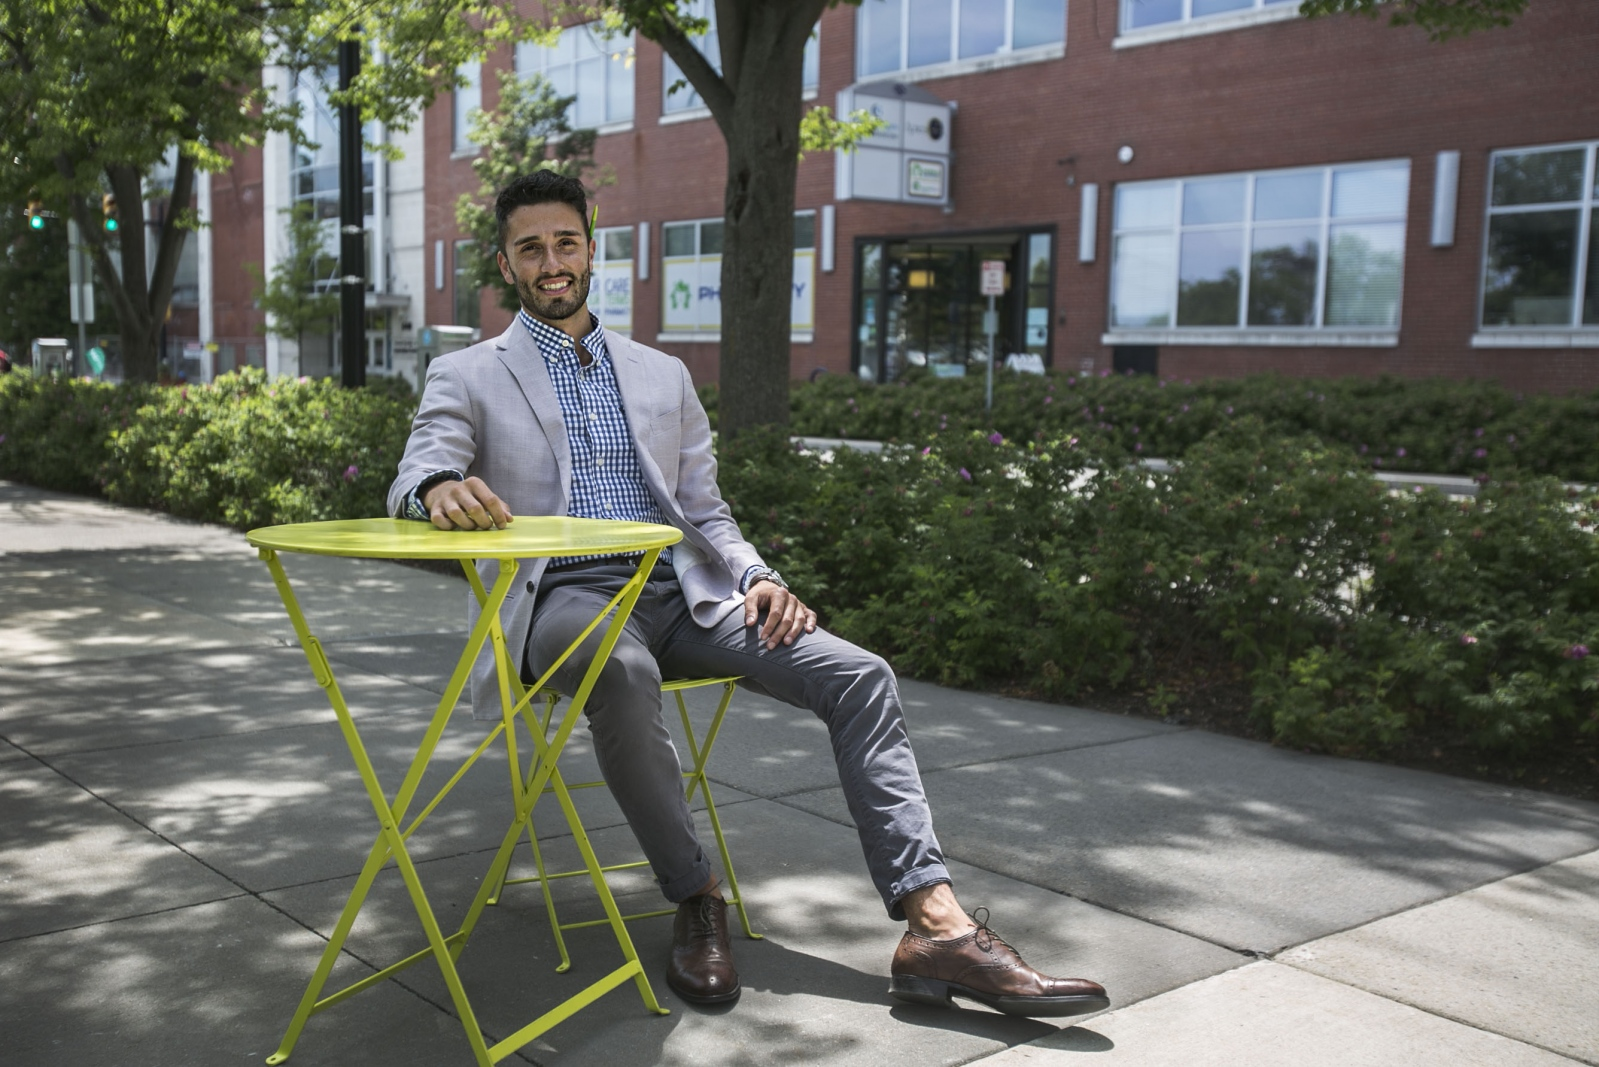 Brian J. Straka, director of Portfolio Recruitment & Selection at 43North, takes a seat outside his office building in Buffalo, N.Y.